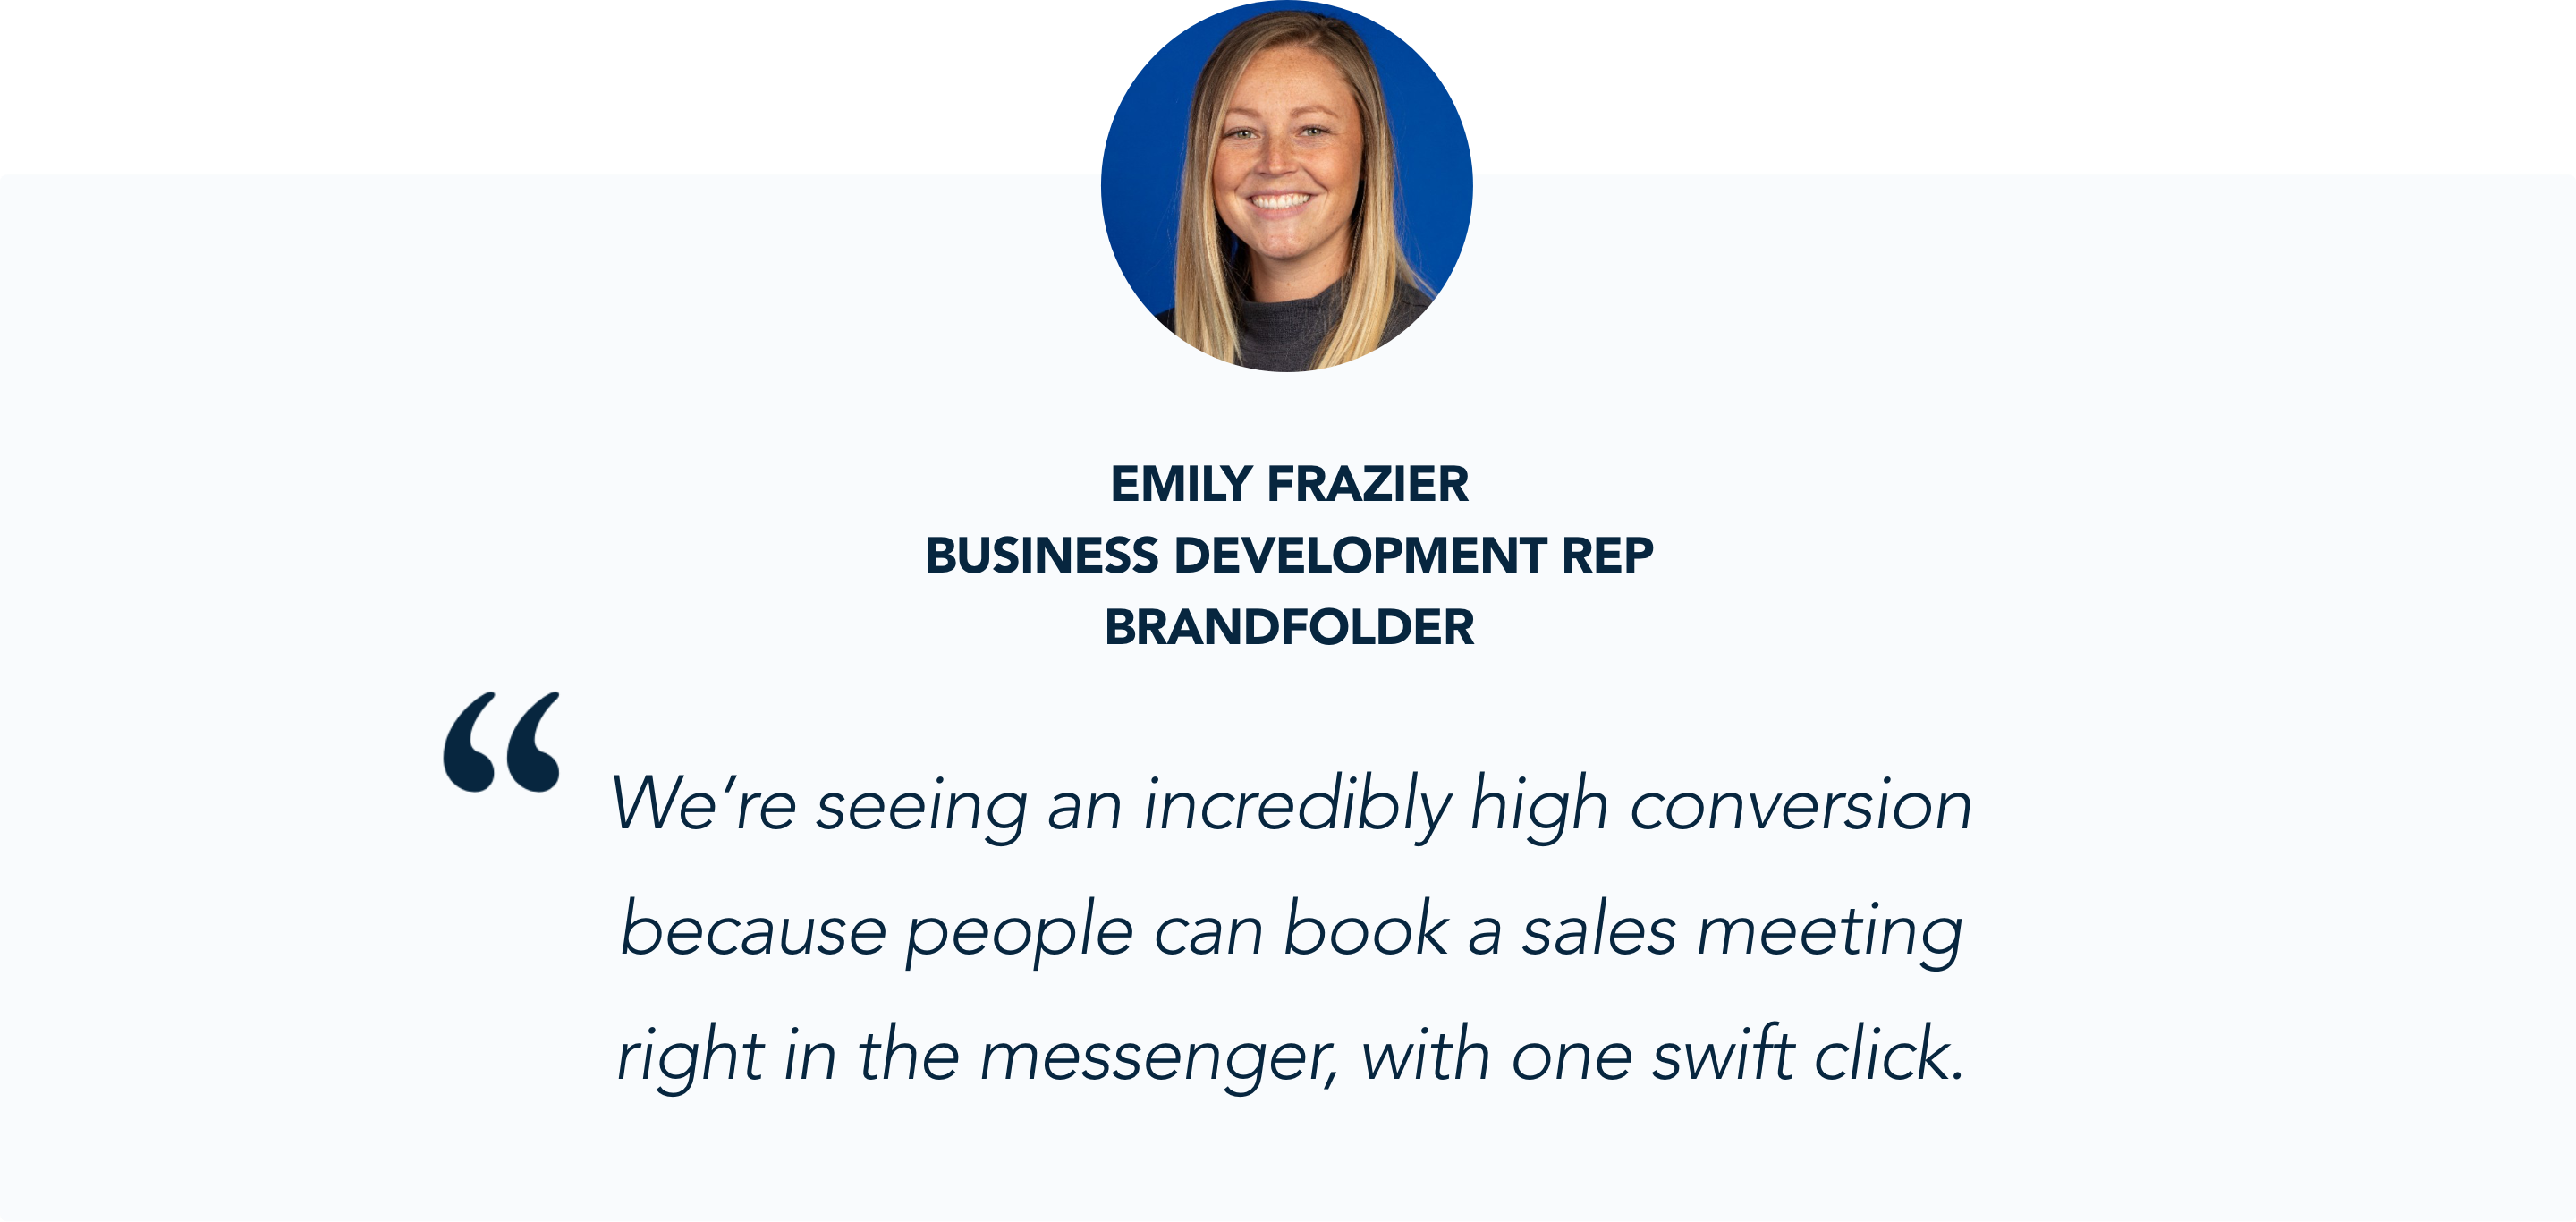 Emily Carpenter, Brandfolder, shares her experience with Qualified Conversational Marketing app